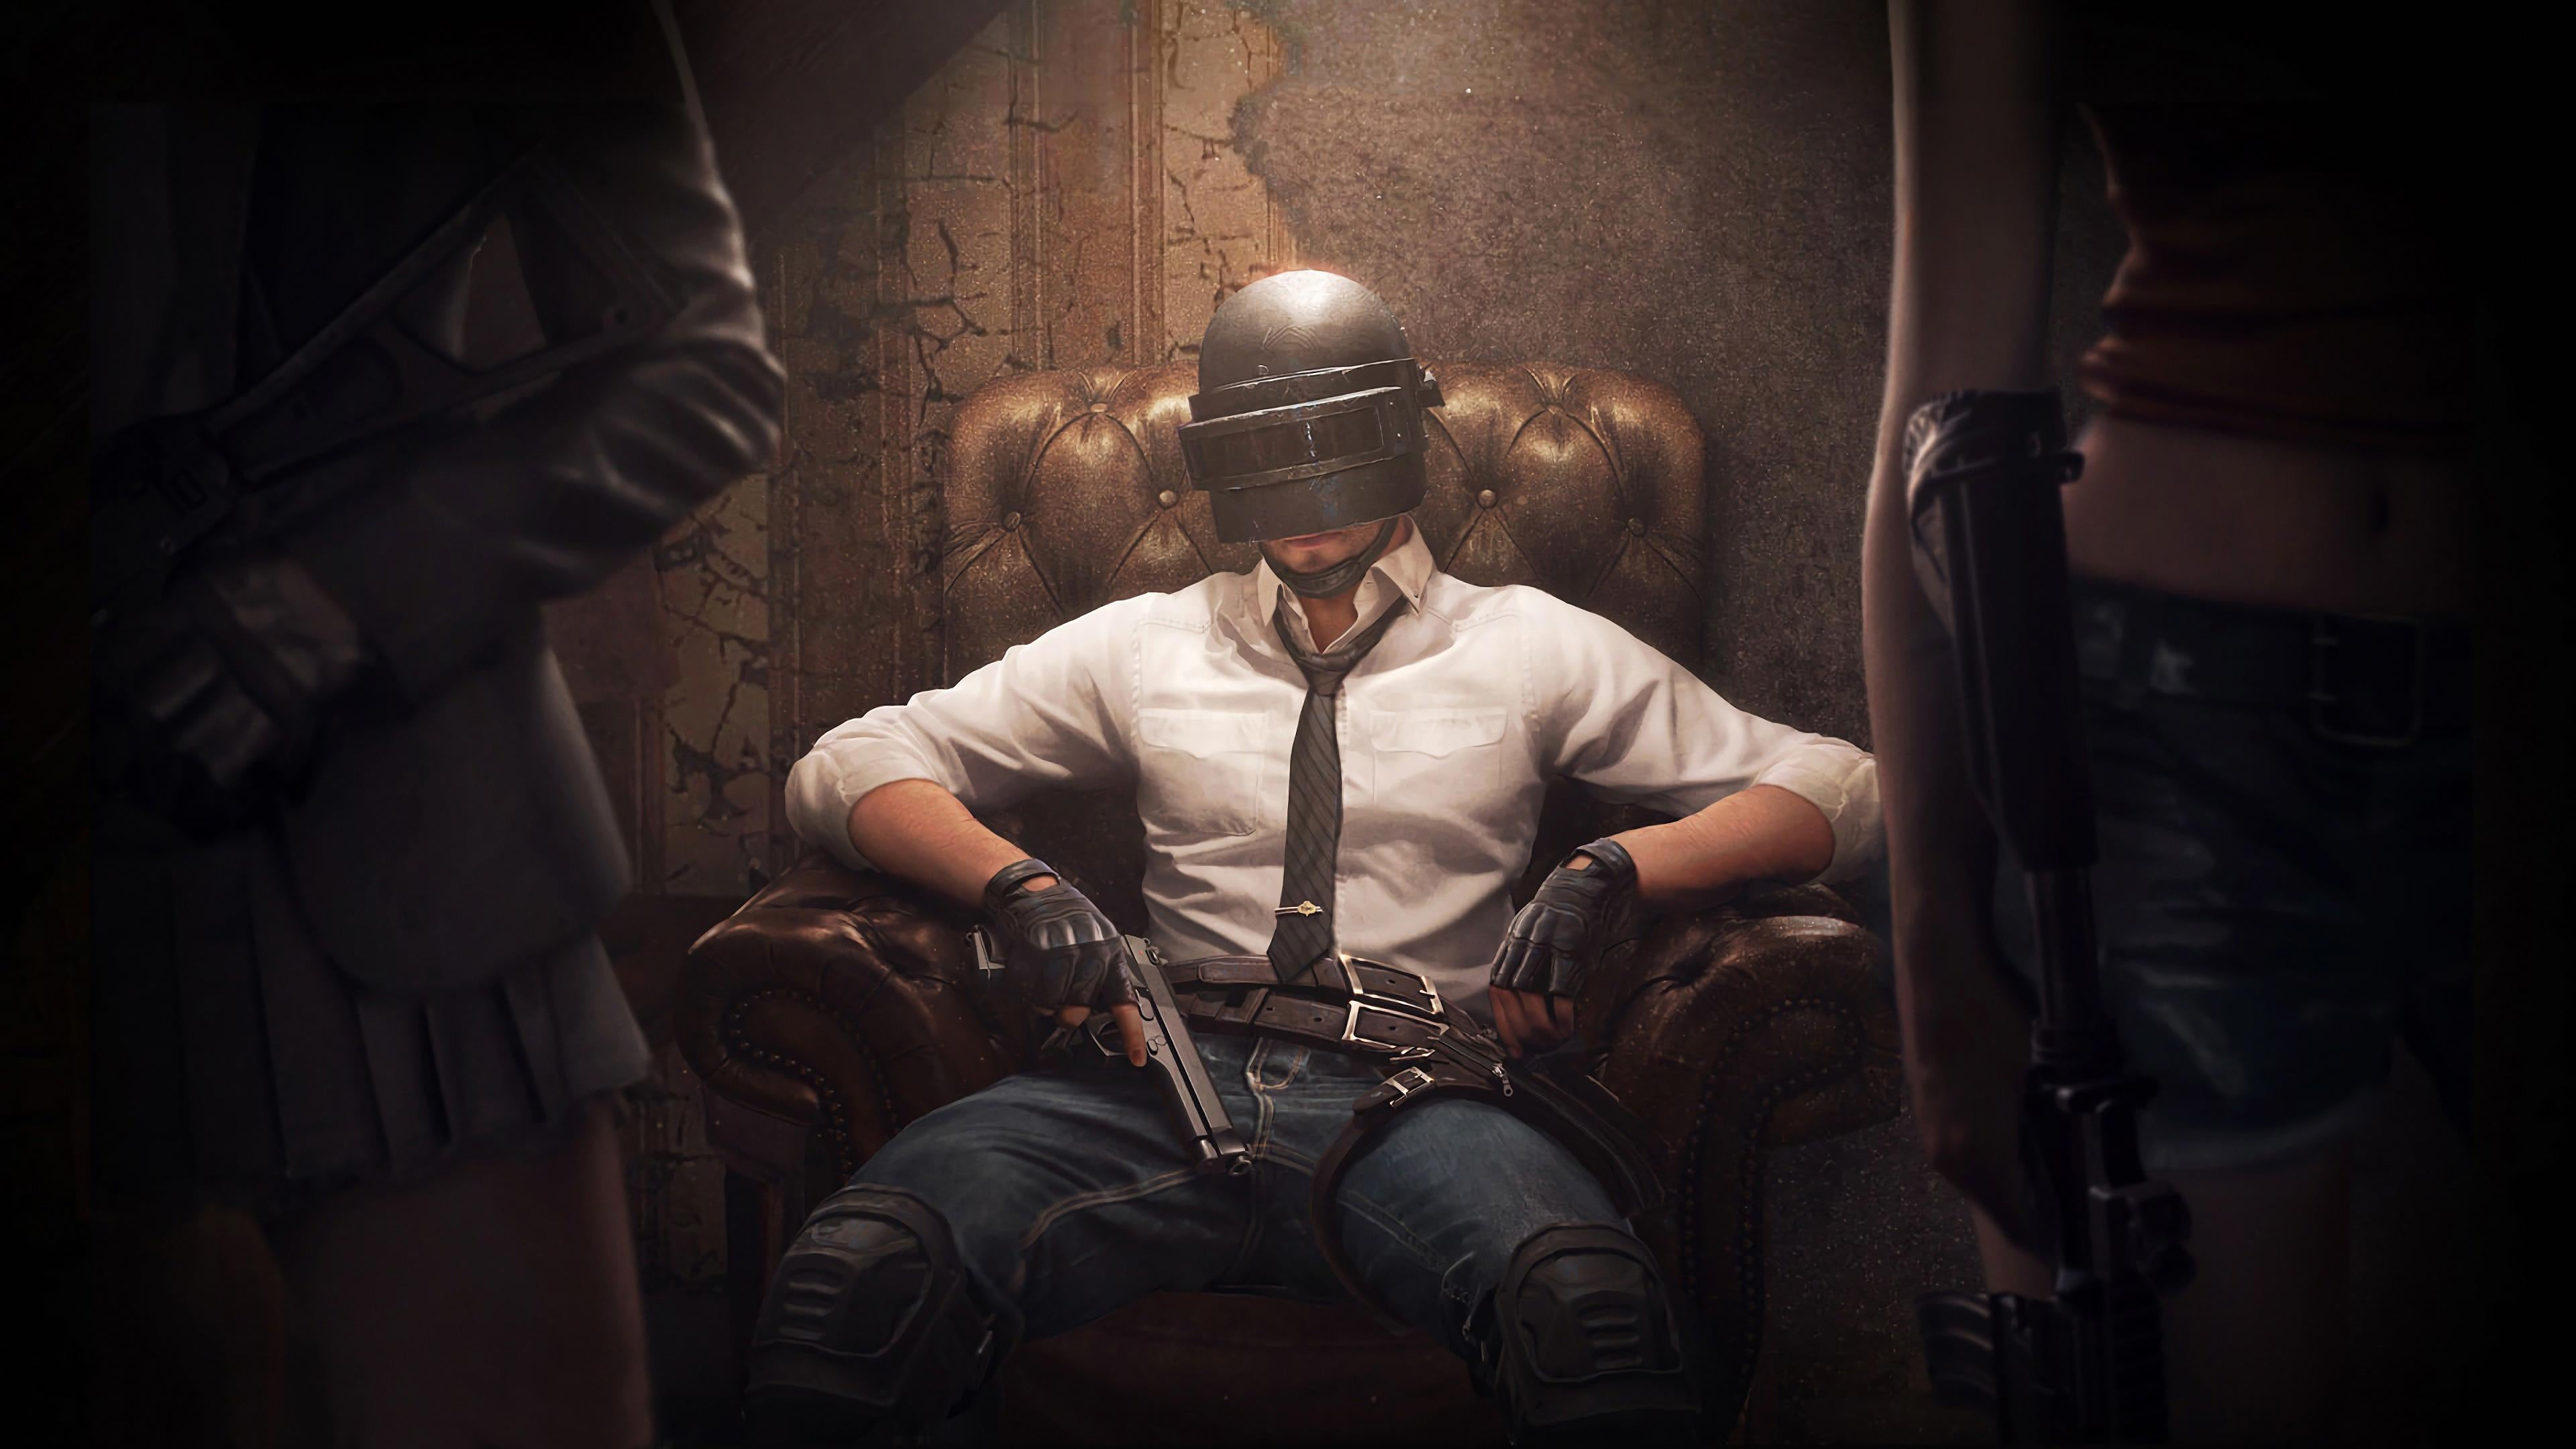 Pubg For Laptop Or Desktop 4k Wallpaper